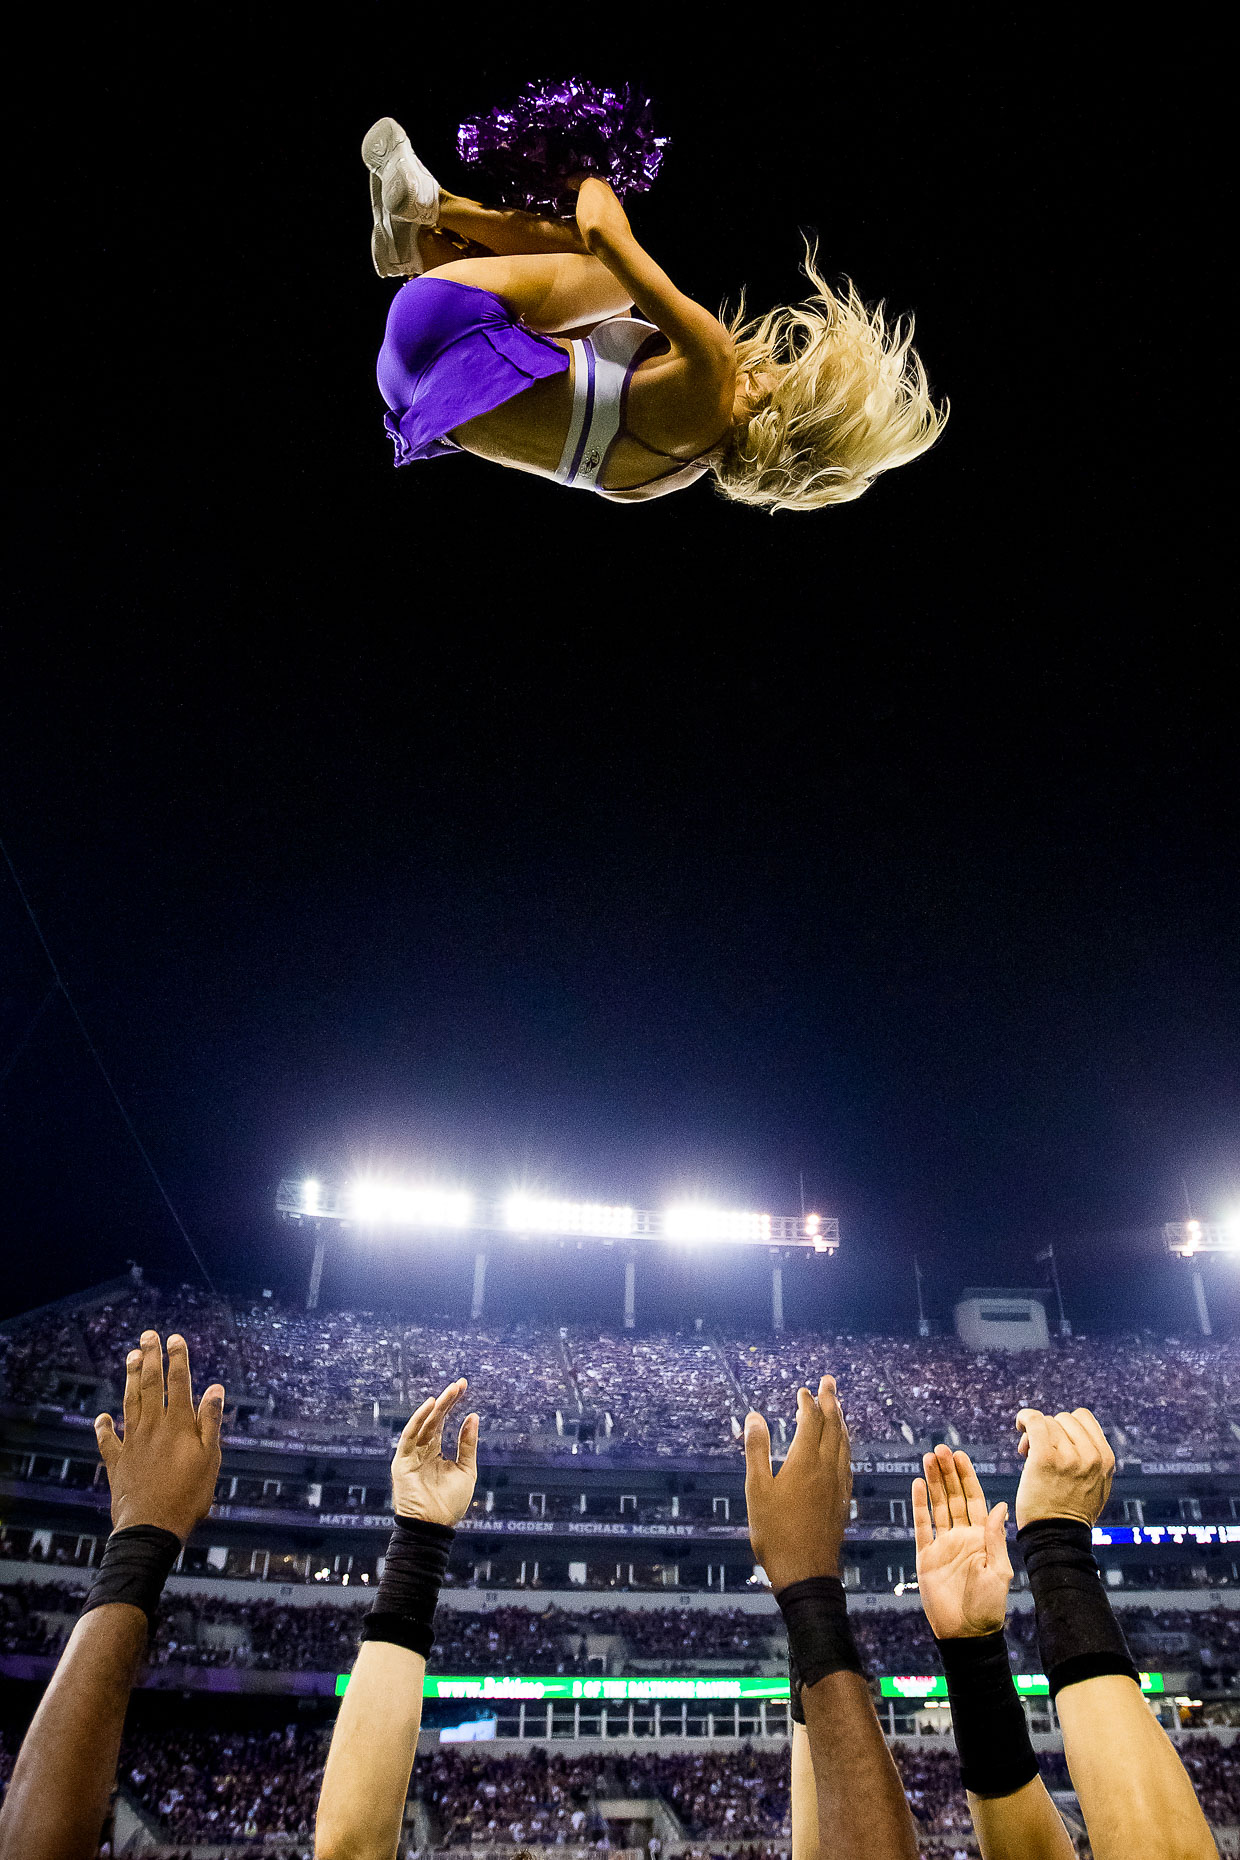 NFL Cheerleading - Commercial Sports Photographer 30